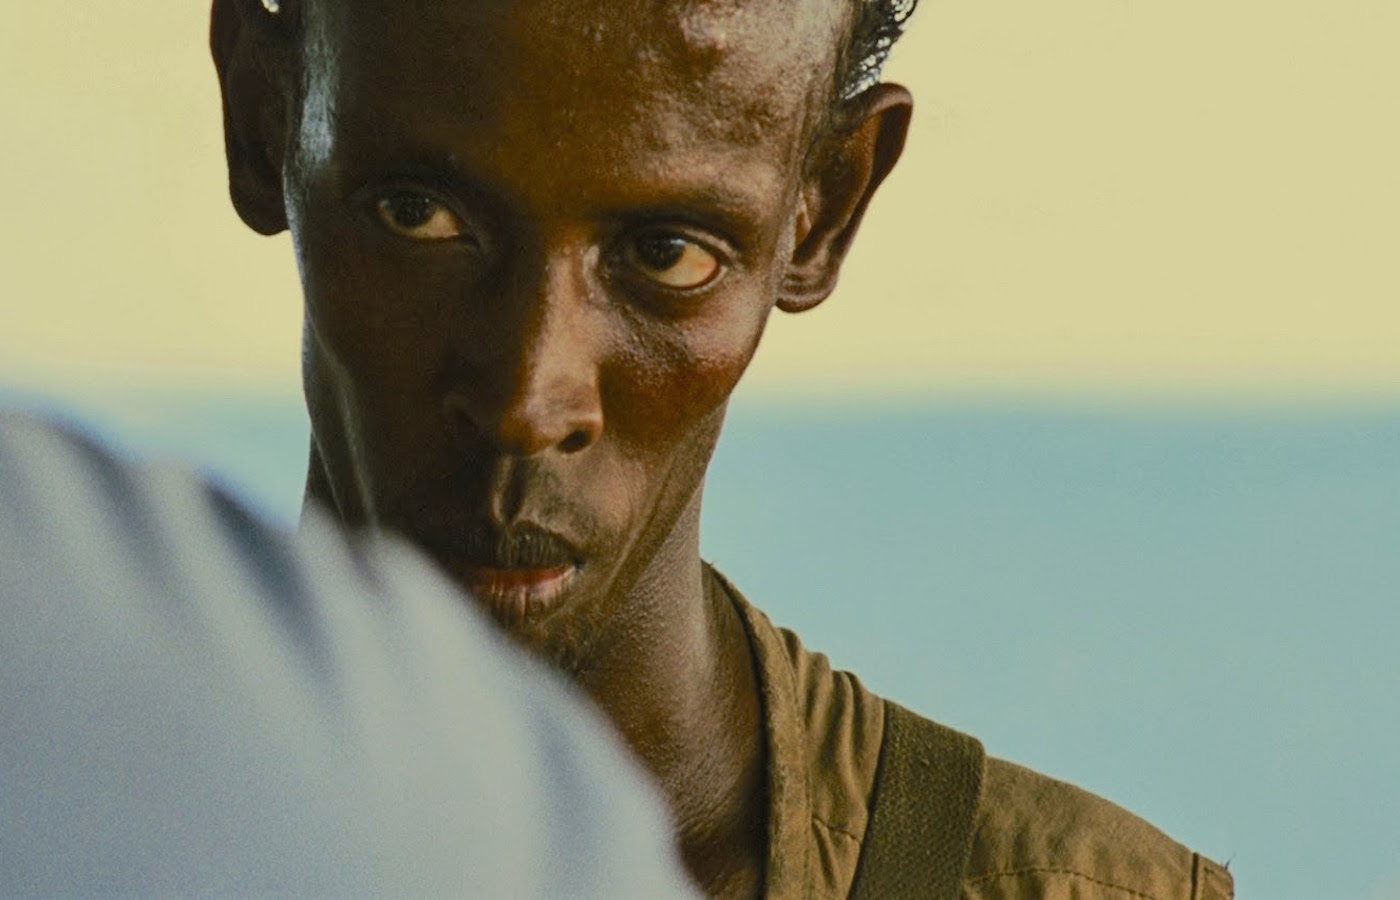 Barkhad-Abdi-Captain-Phillips.jpg